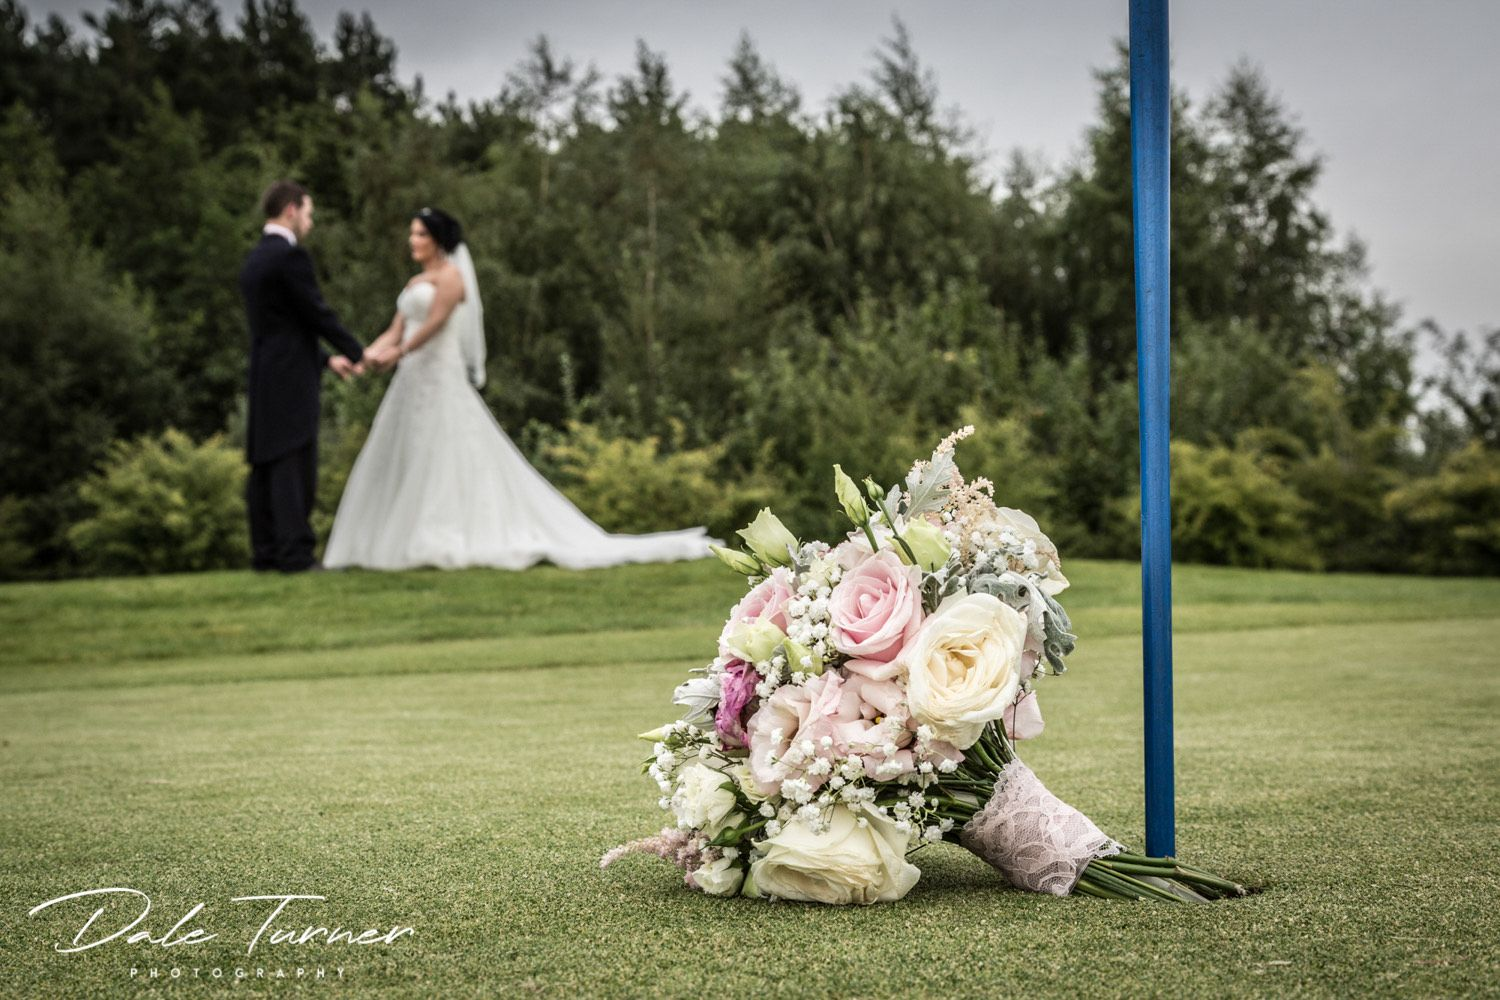 Bride and groom on golf course